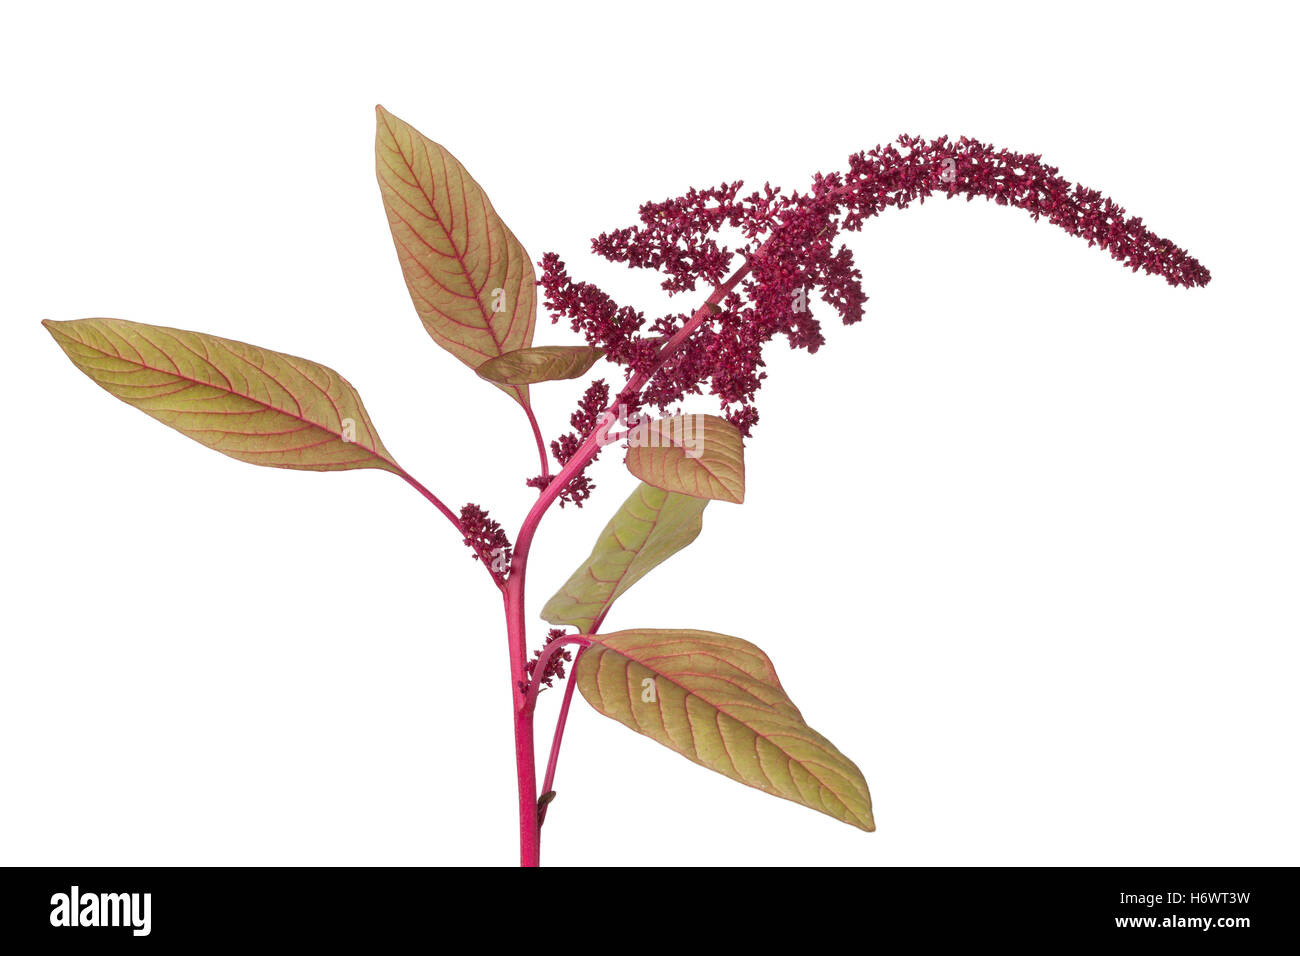 Twig with amaranth flowers on white background - Stock Image